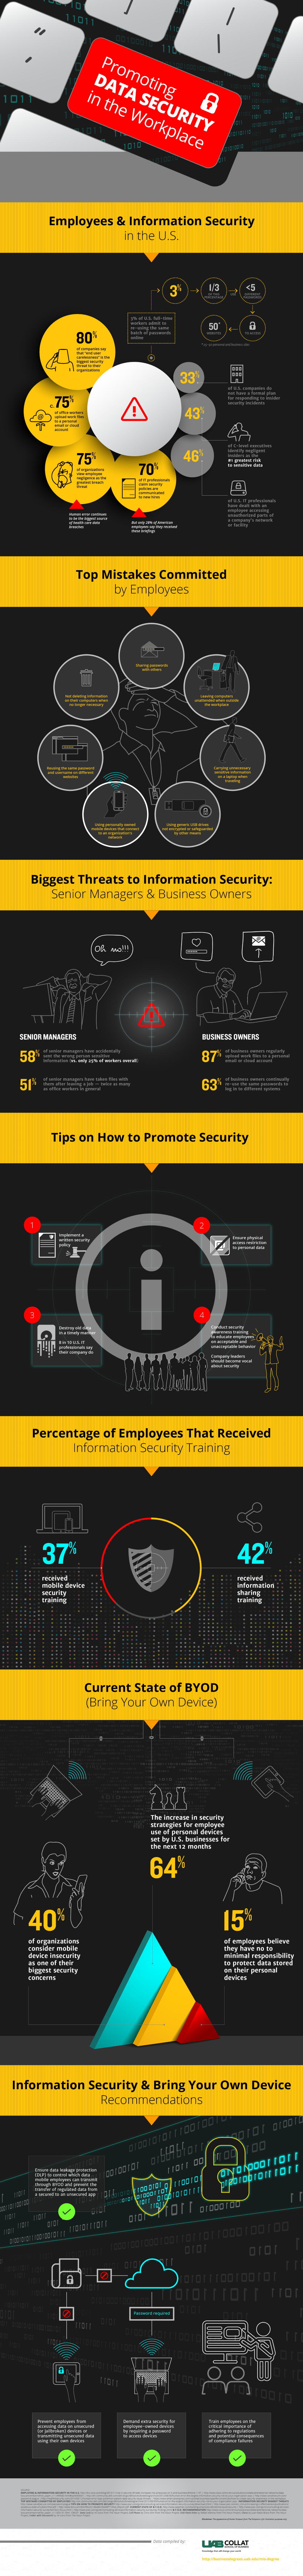 Promoting Data Security in the Workplace [InfoGraphic]